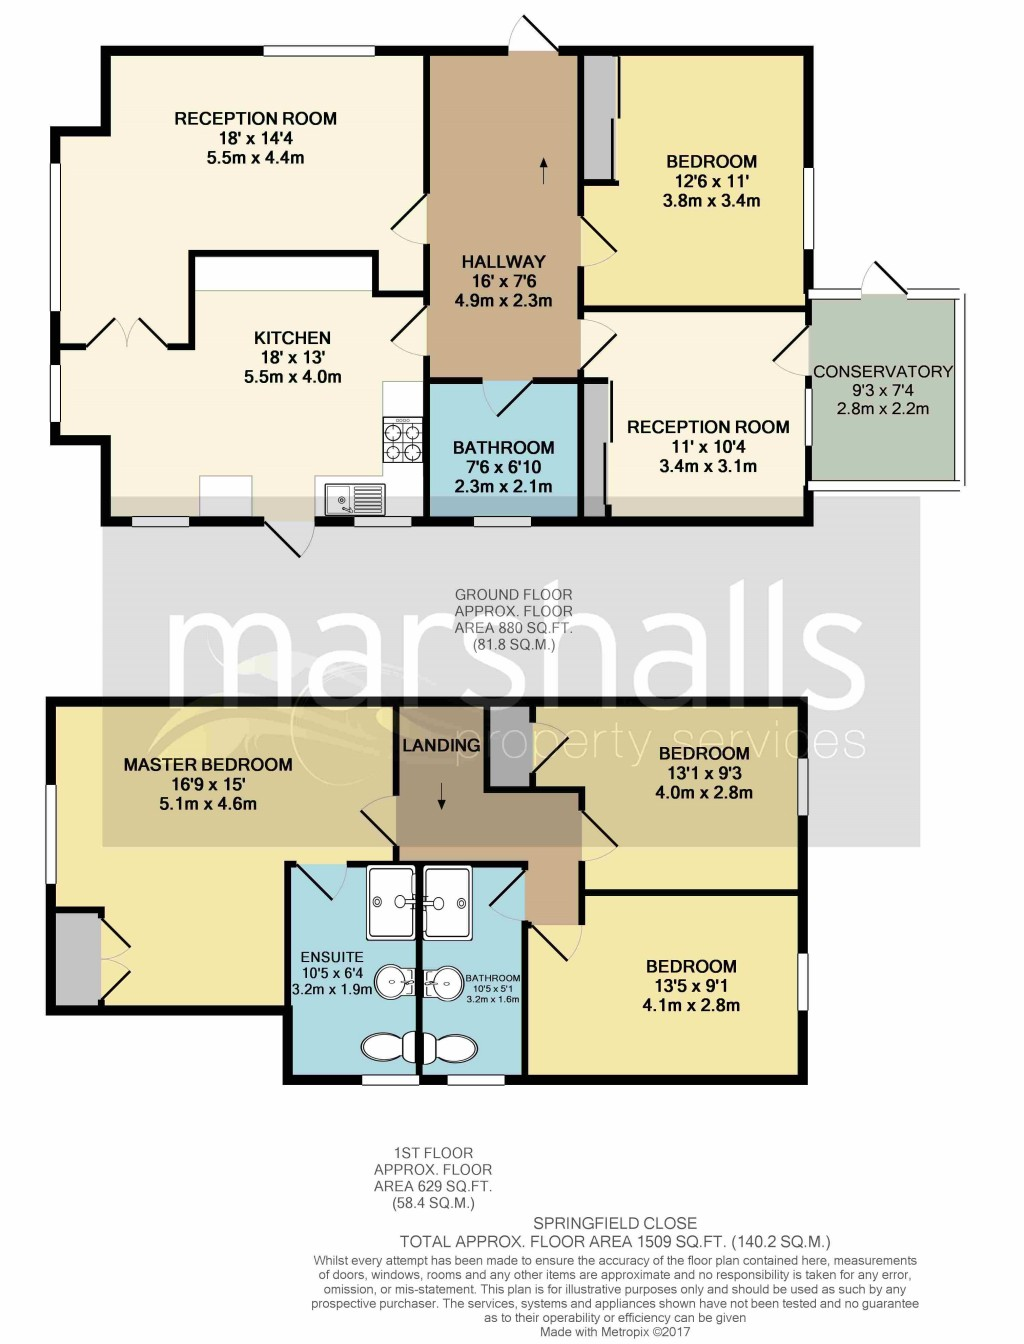 Floorplans For Springfield Close, Windsor